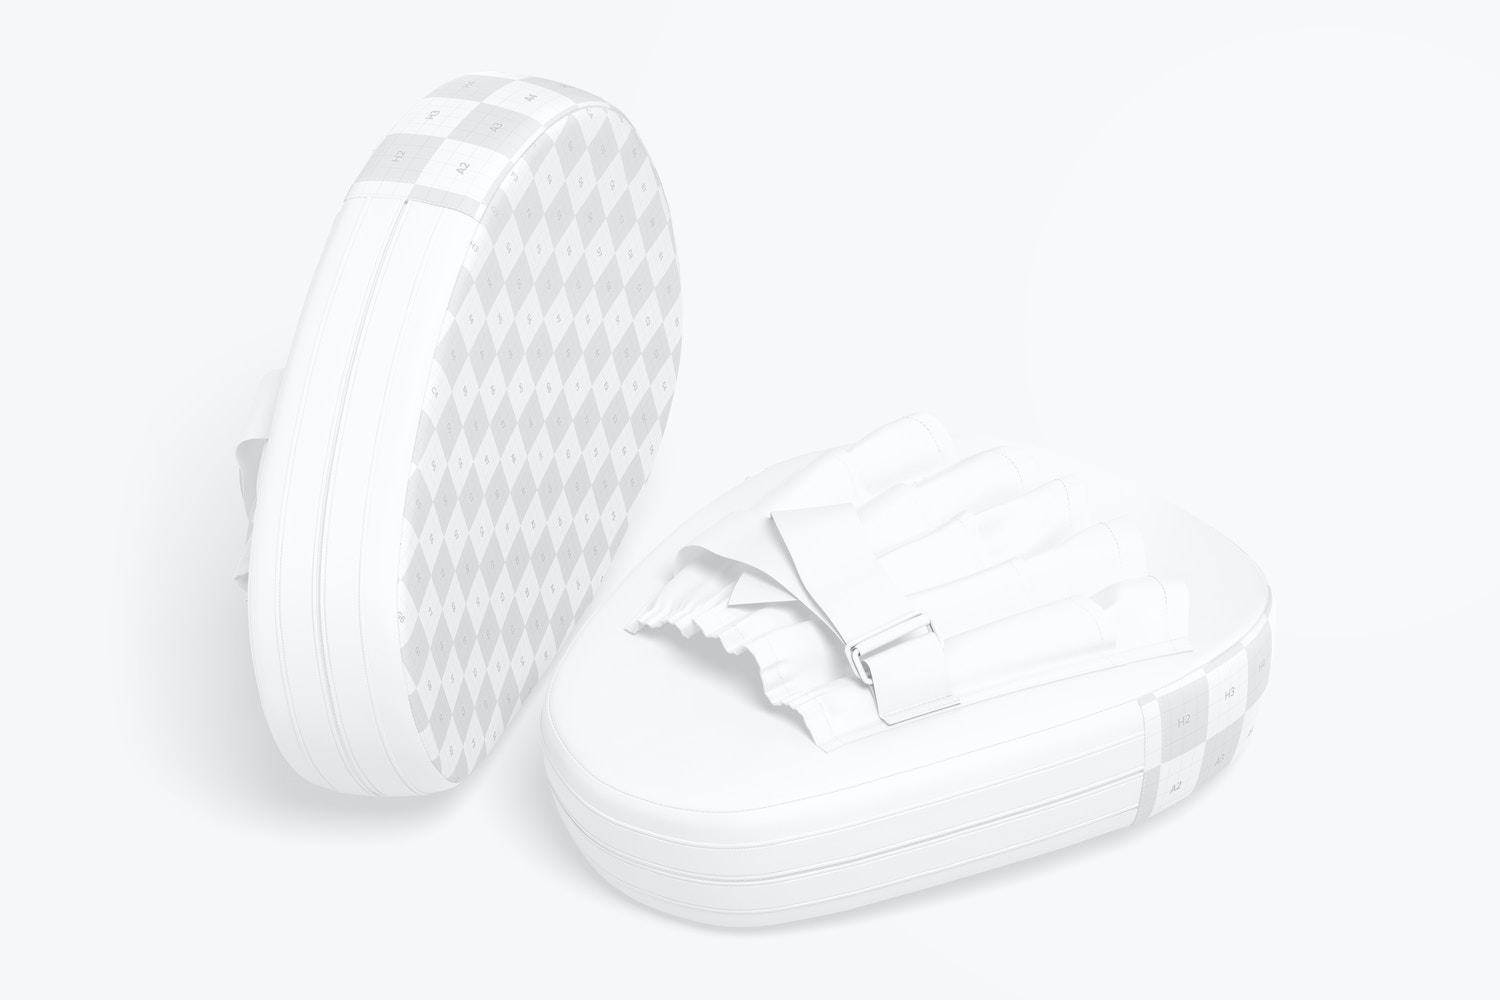 Boxing Punching Mitts Mockup, Perspective